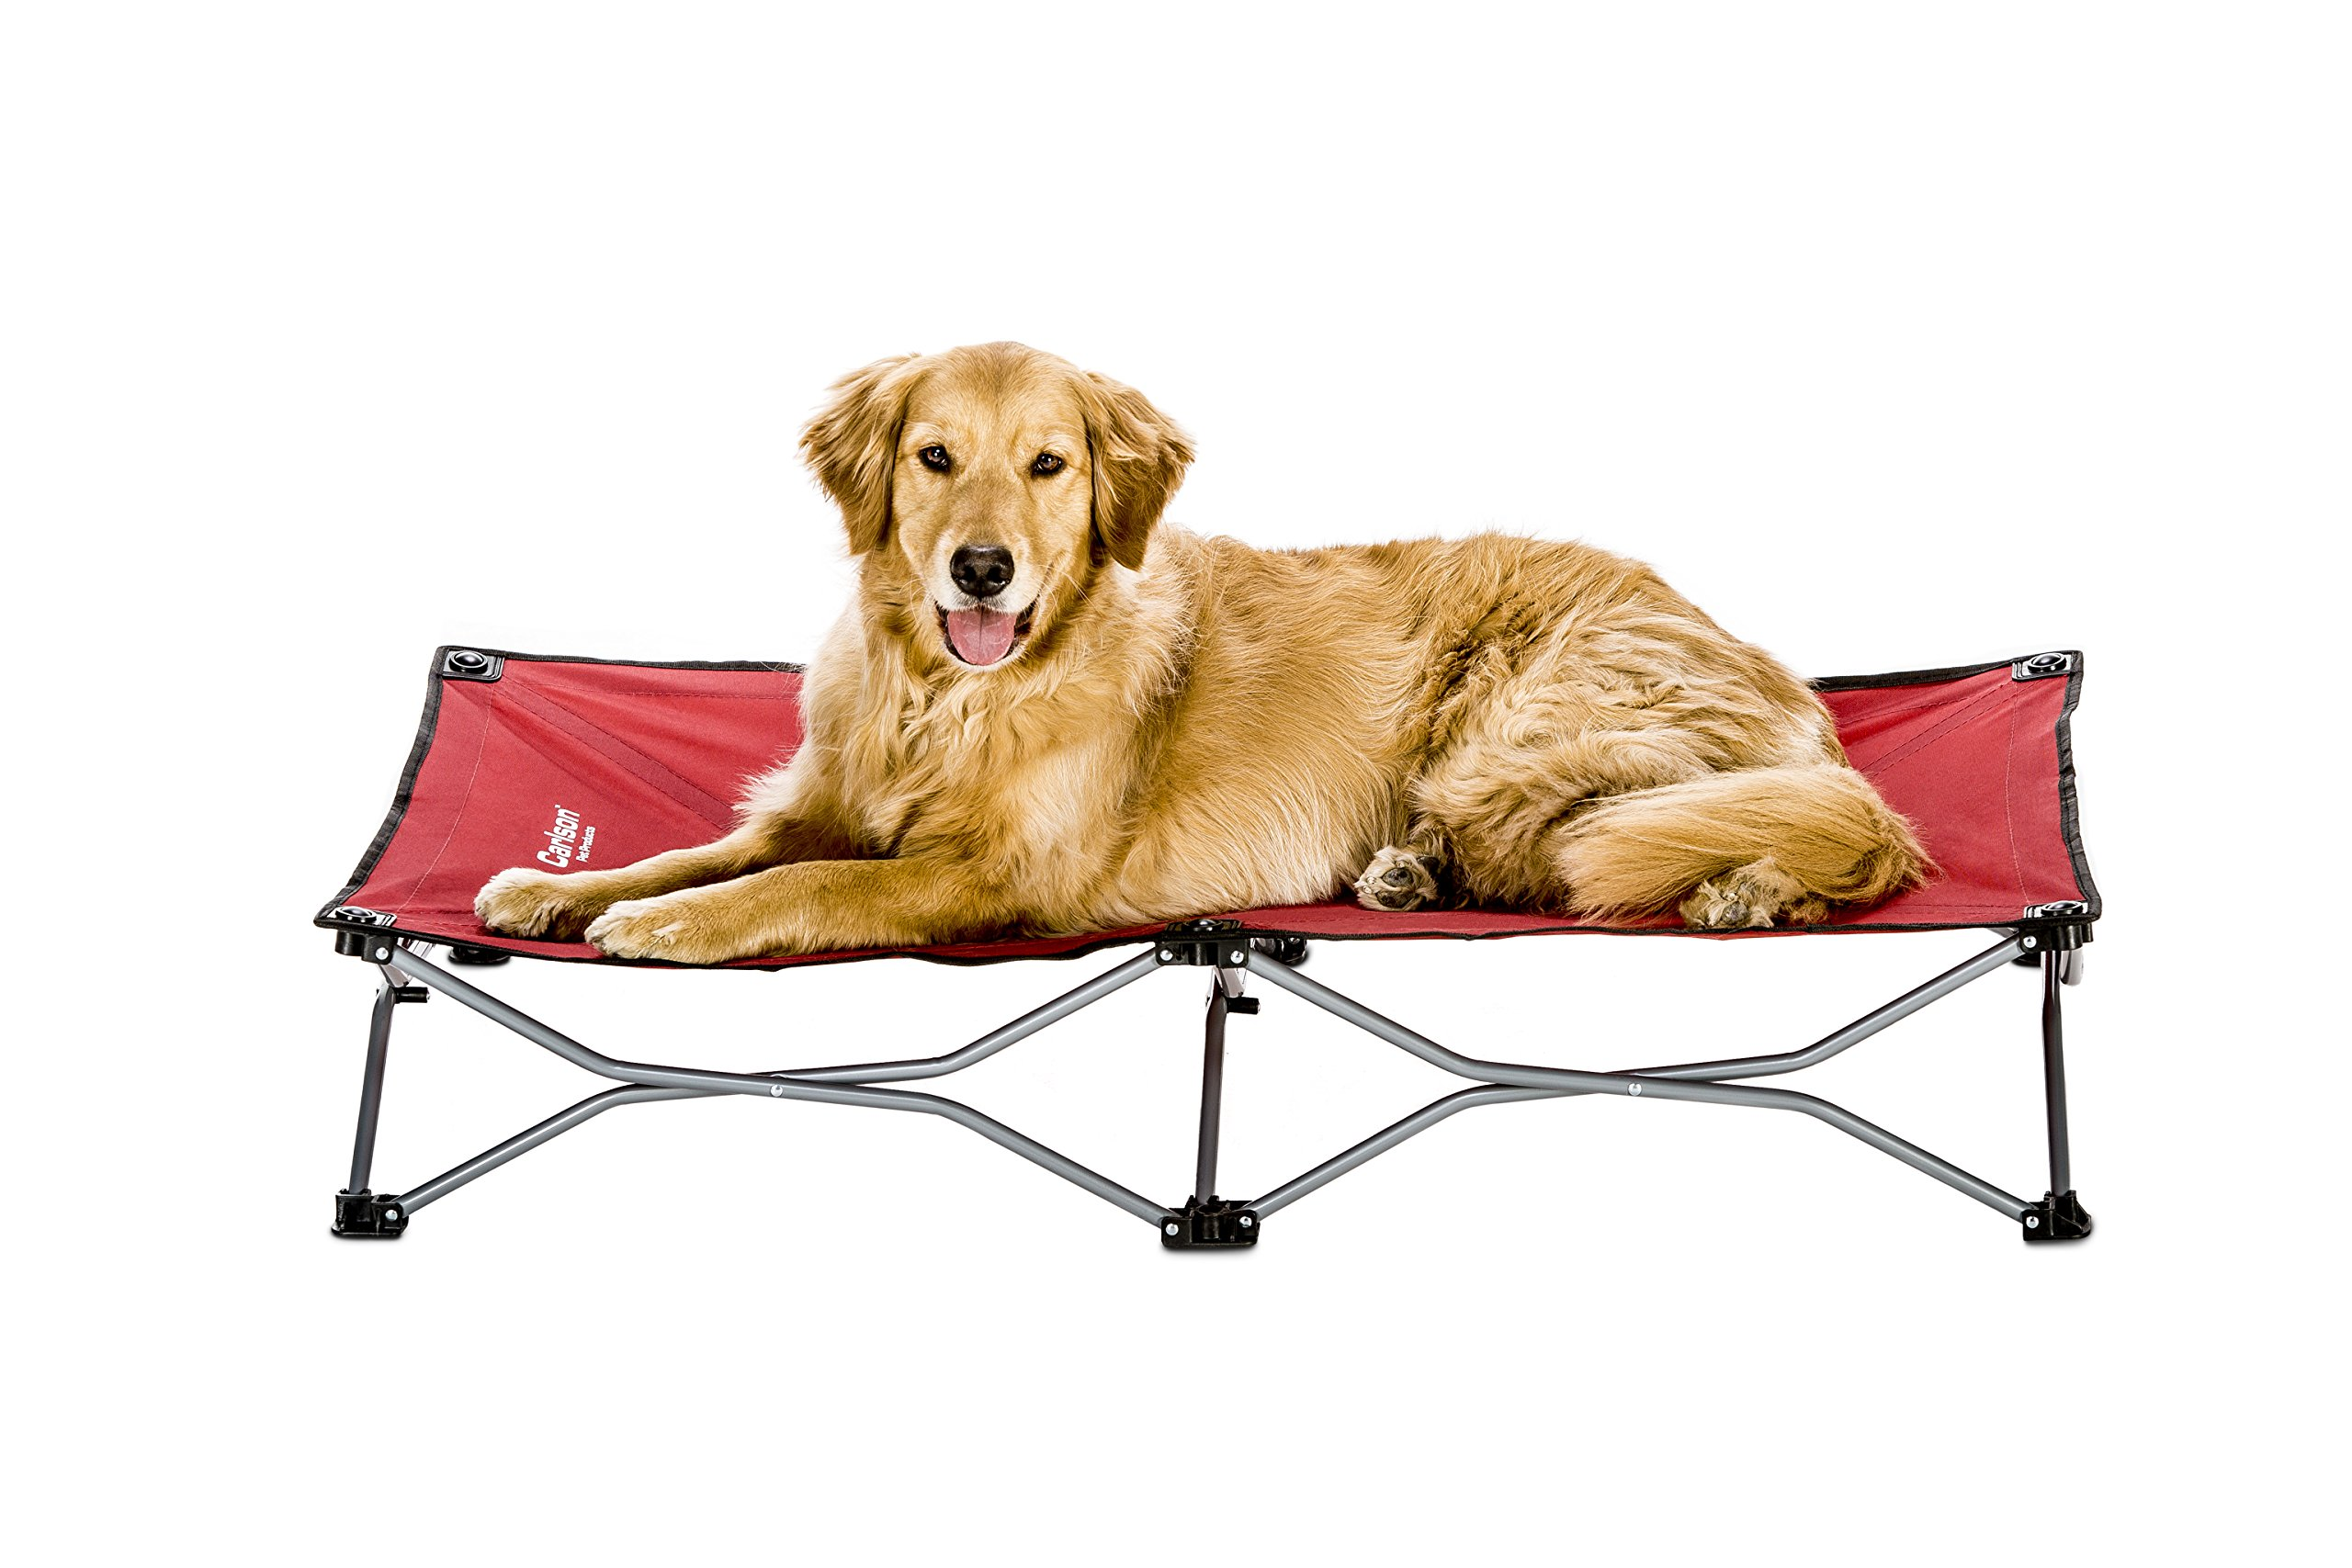 Carlson Pet Products 8035 Elevated Folding Pet Bed 46'' Long, Includes Travel Case, Red